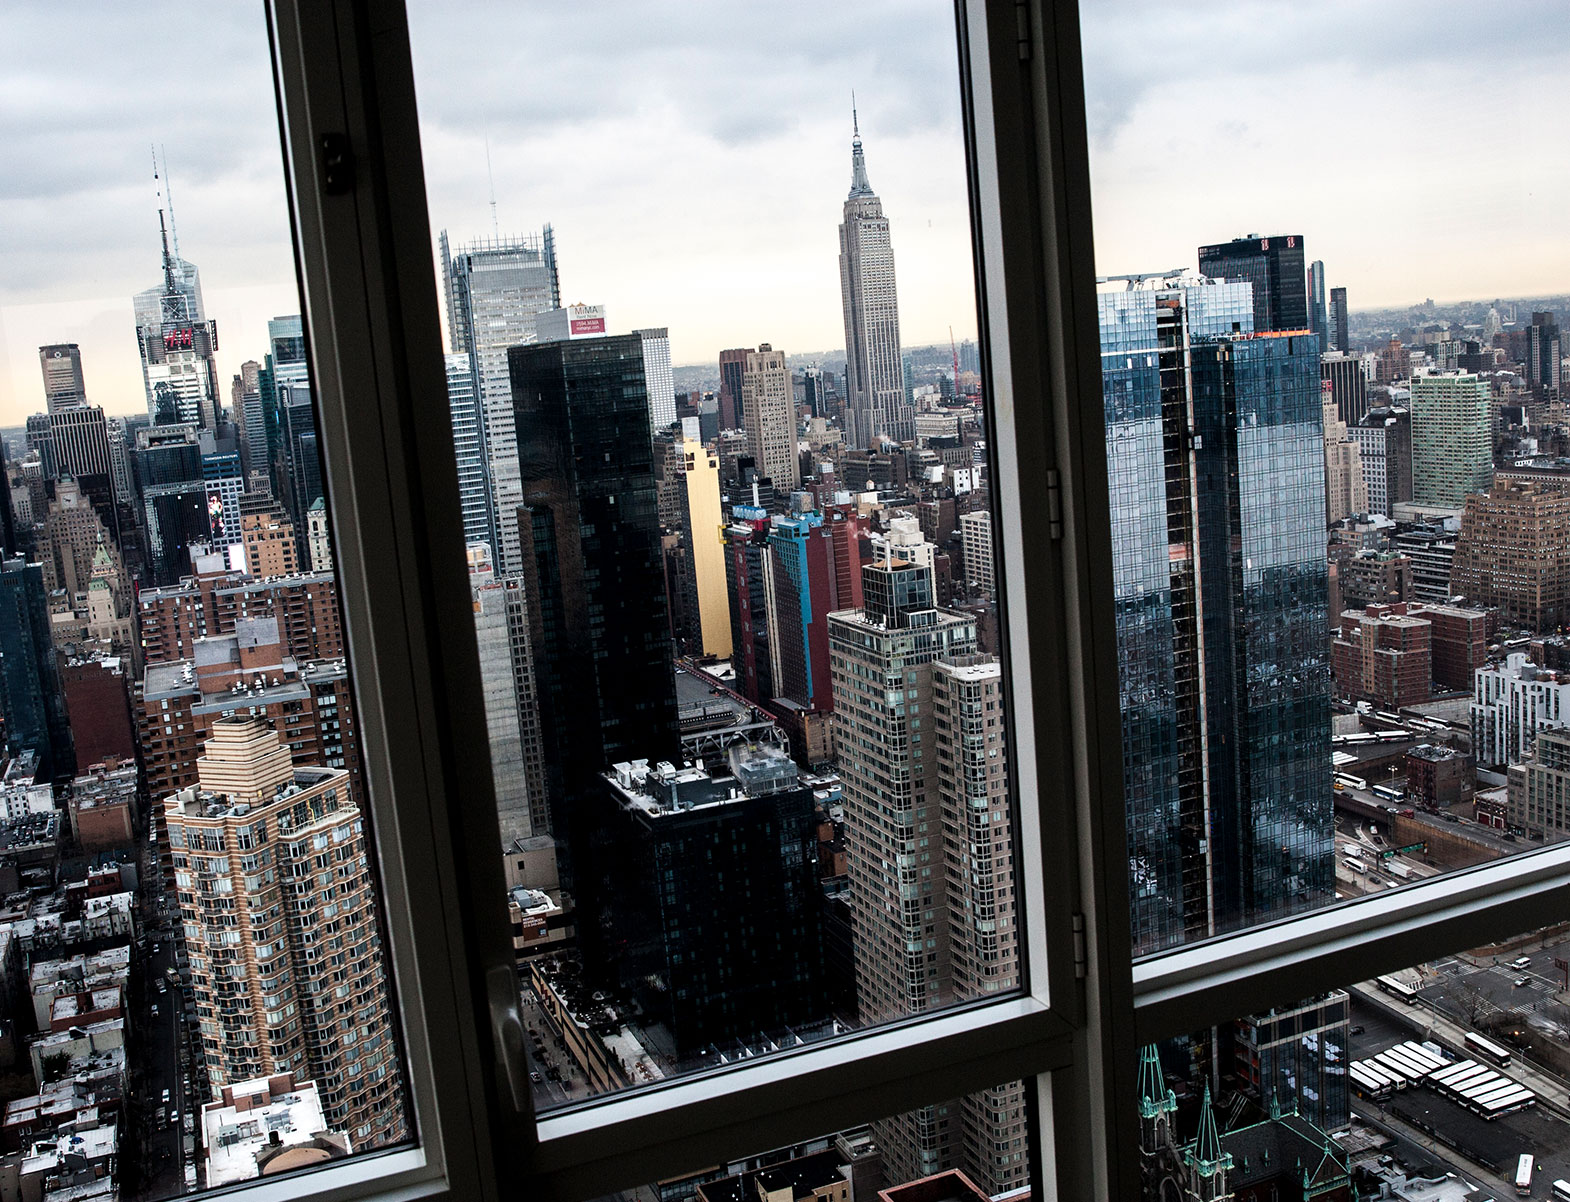 WITLOFT Penthouse in NYC Story skyscraper view